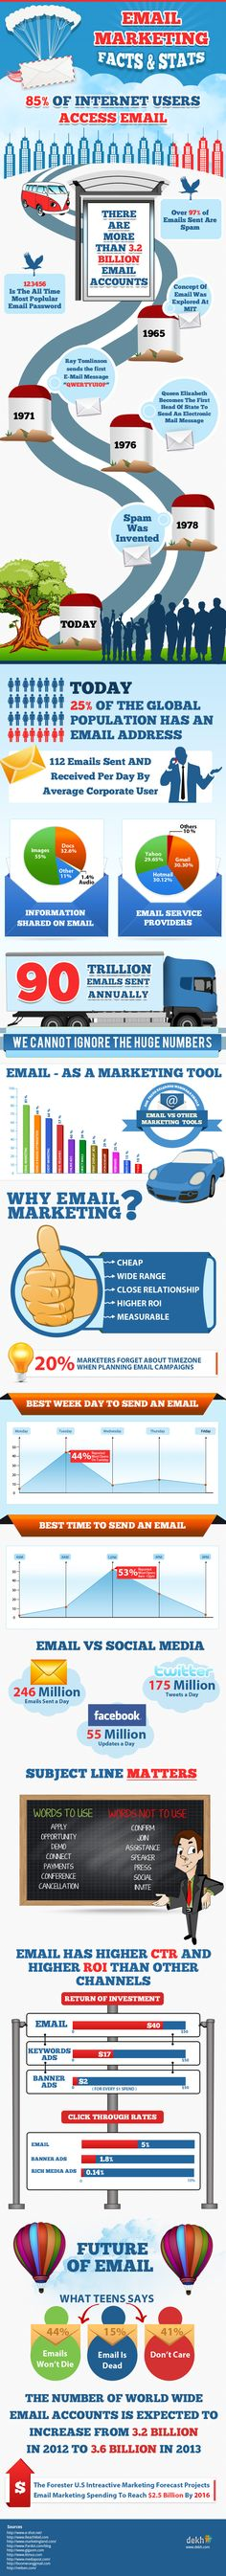 Email marketing stats.